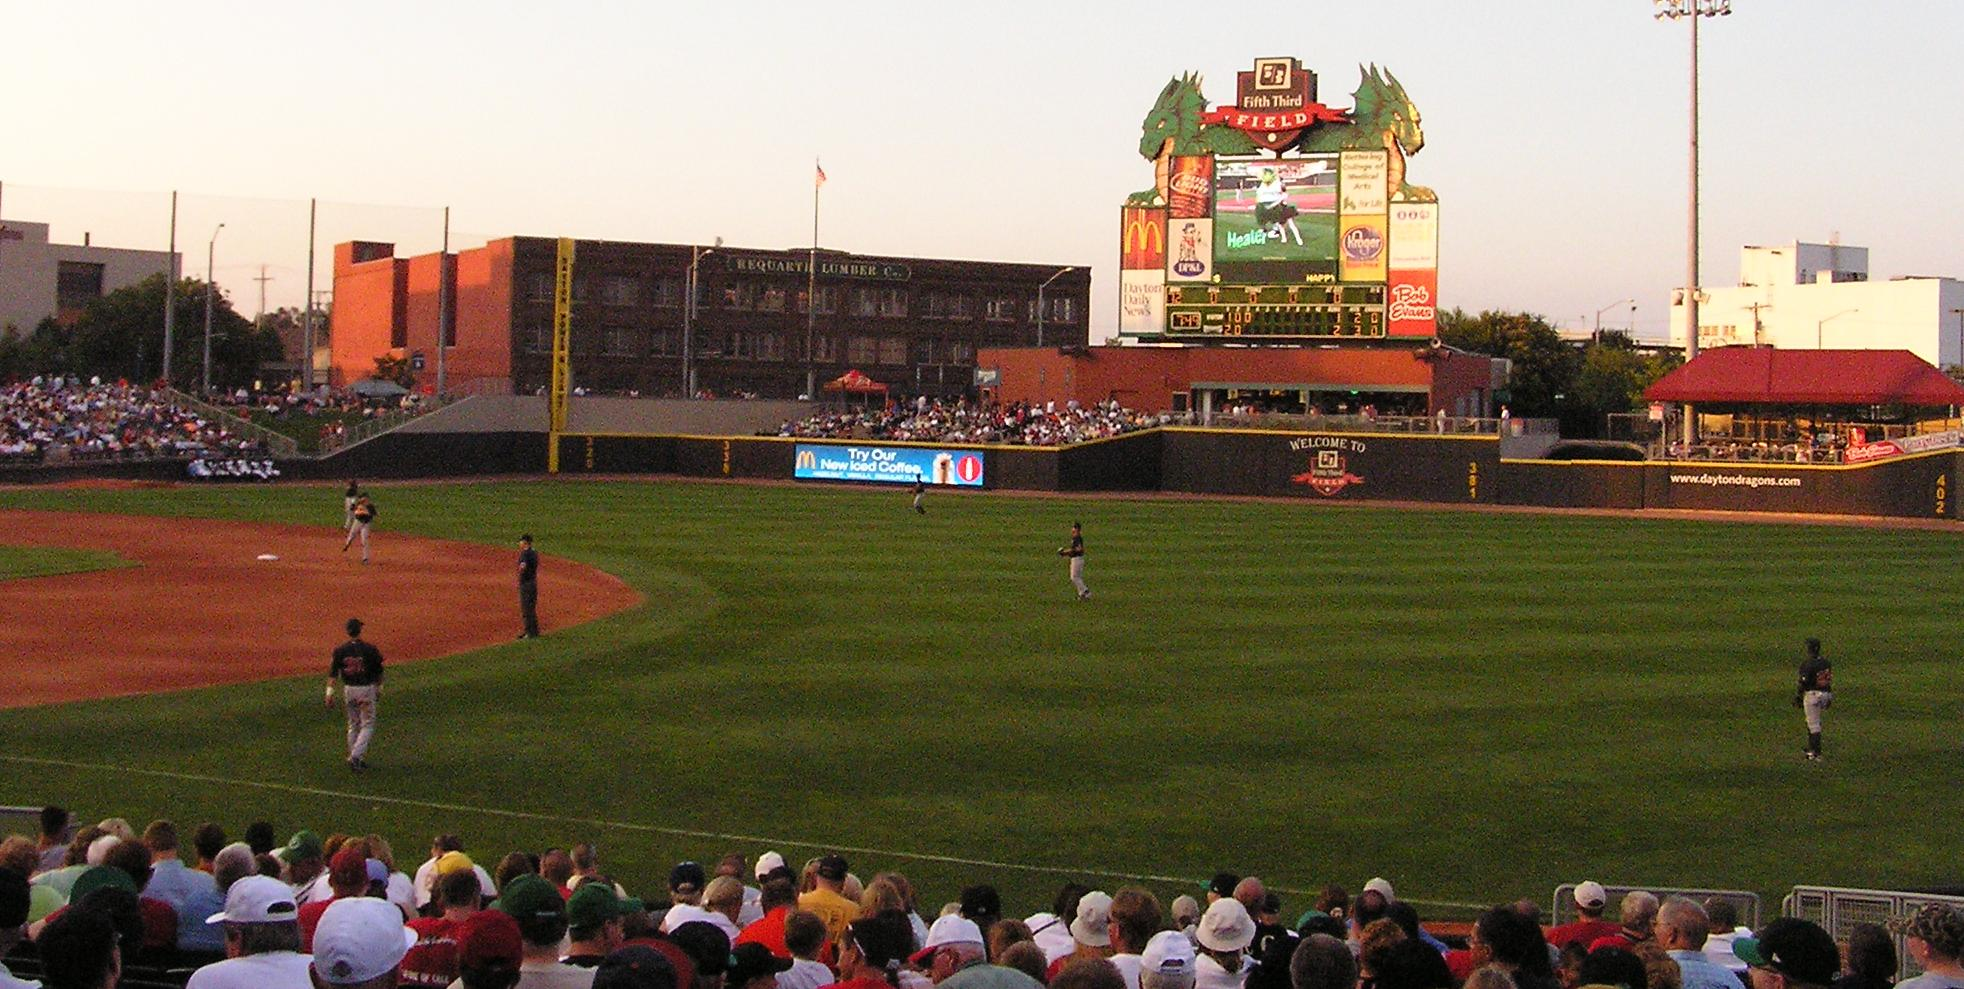 Looking towards LF in Dayton - Fifth Third Field